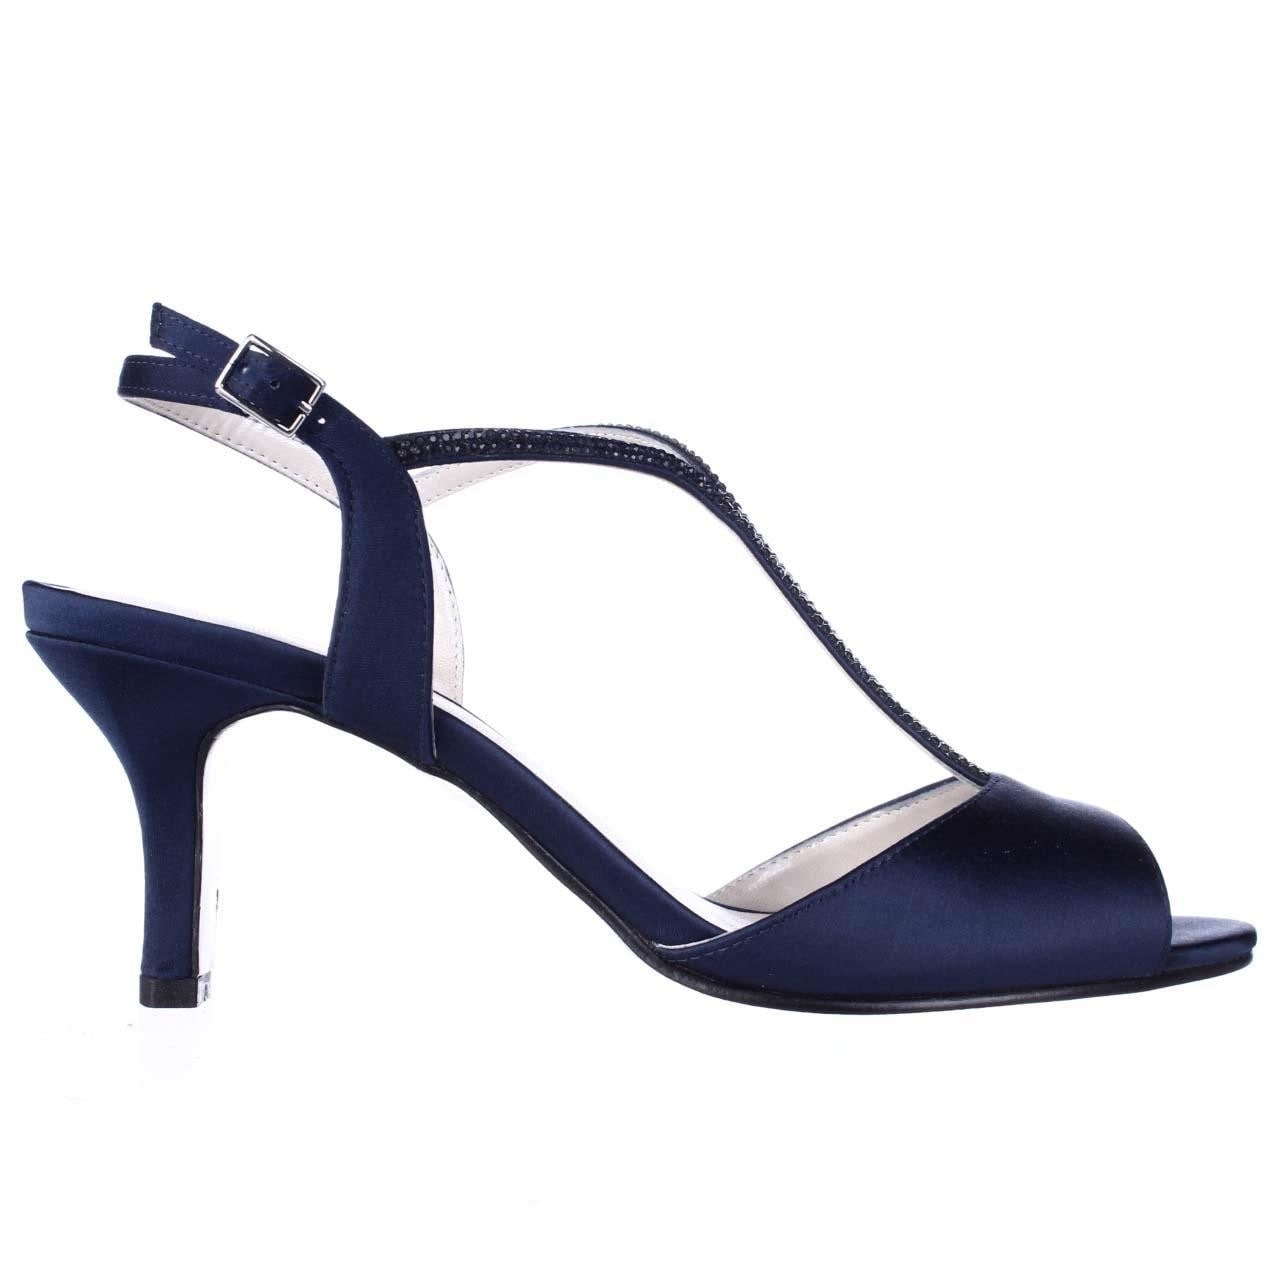 f17f792ad96 Shop Caparros Womens Delicia Open Toe Formal T-Strap Sandals - Free  Shipping On Orders Over  45 - Overstock - 19833978